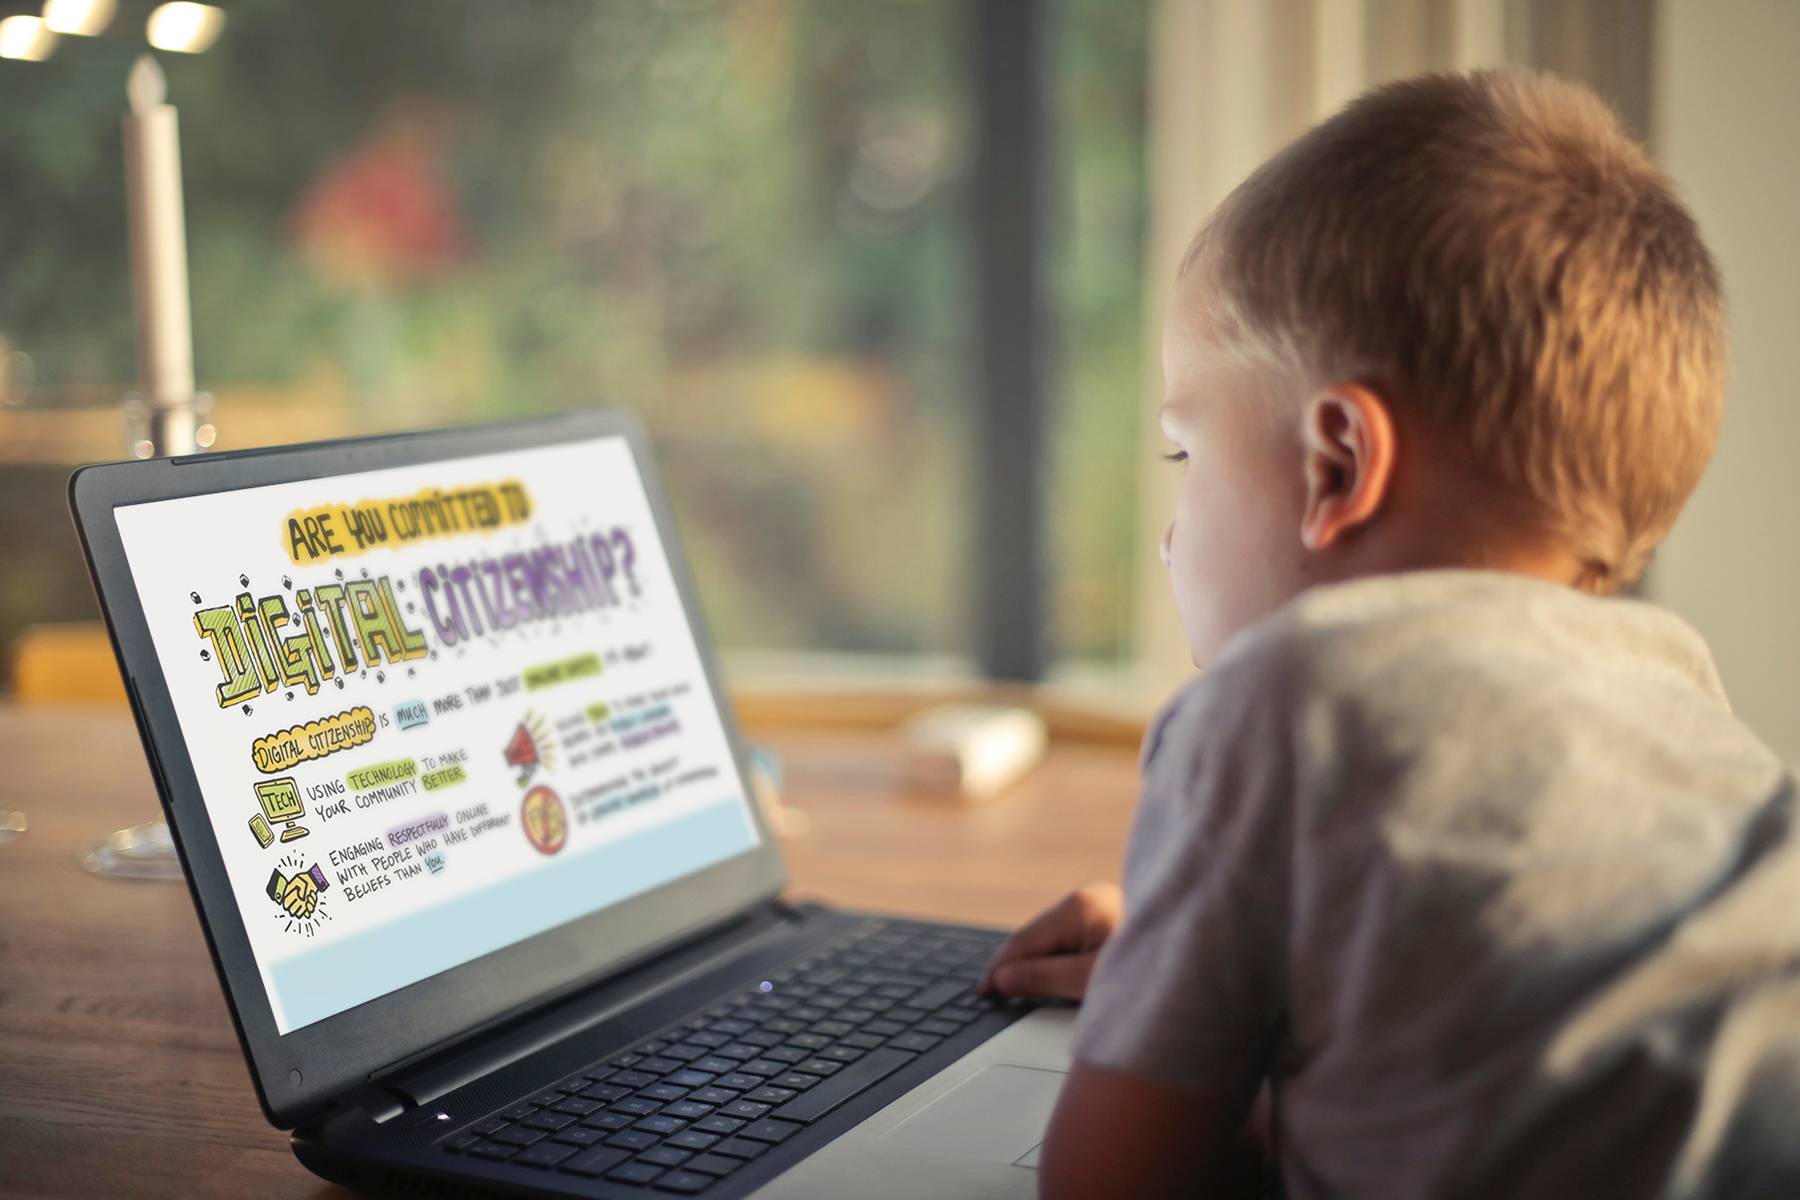 A parent's guide to raising a good digital citizen